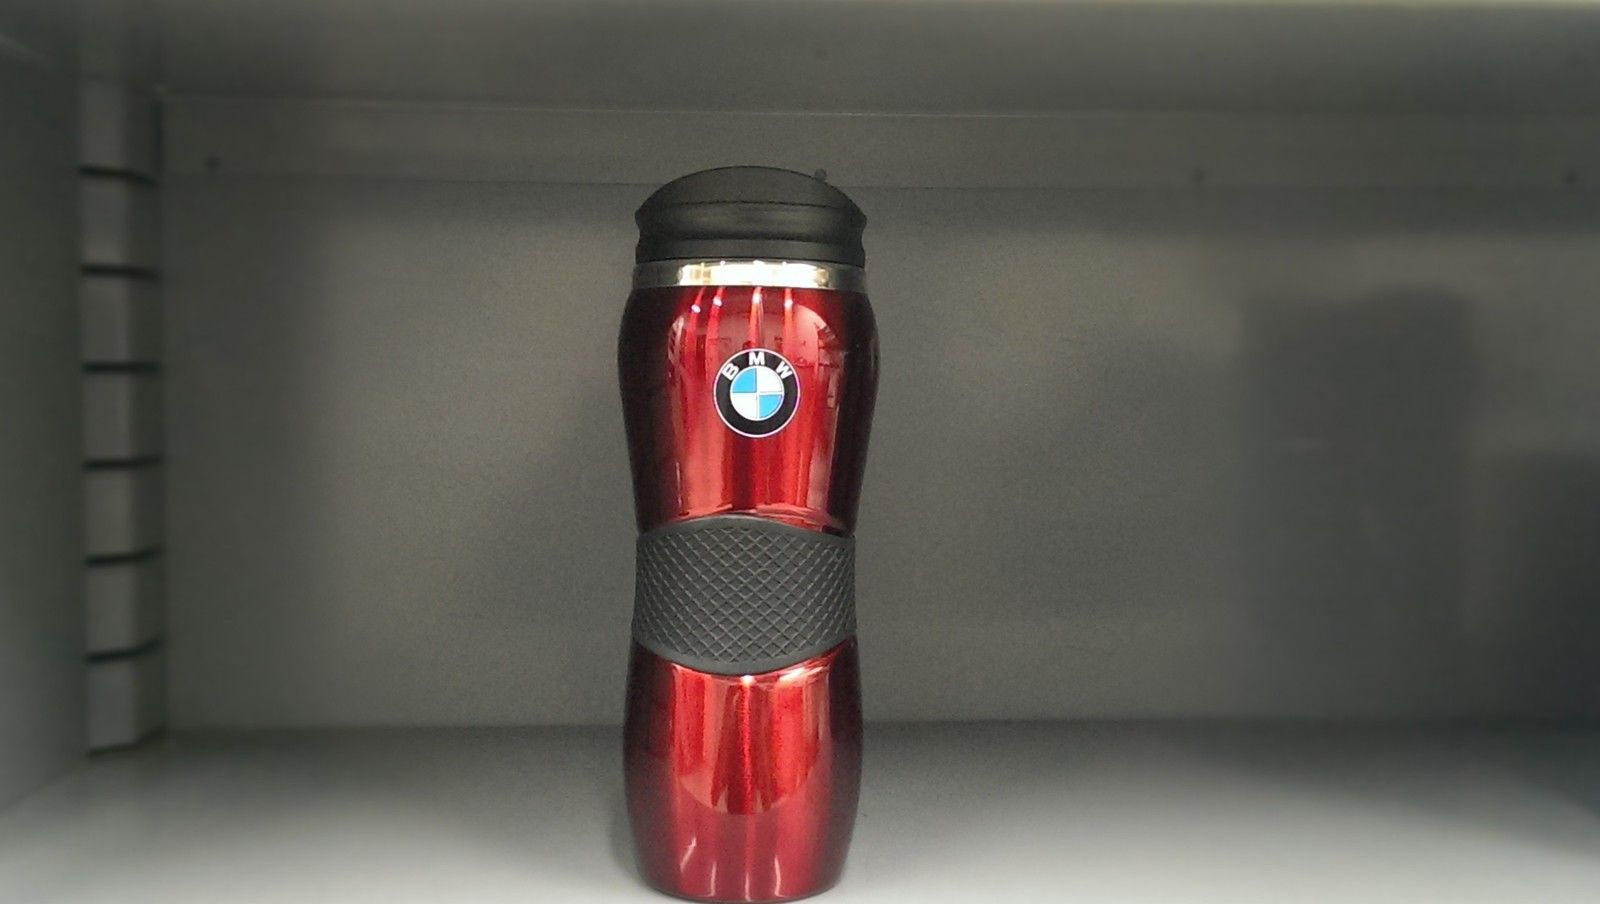 0a7df12f124 Bmw Travel Mug - The Gripper - Red - 80900440458 | Products | Travel ...